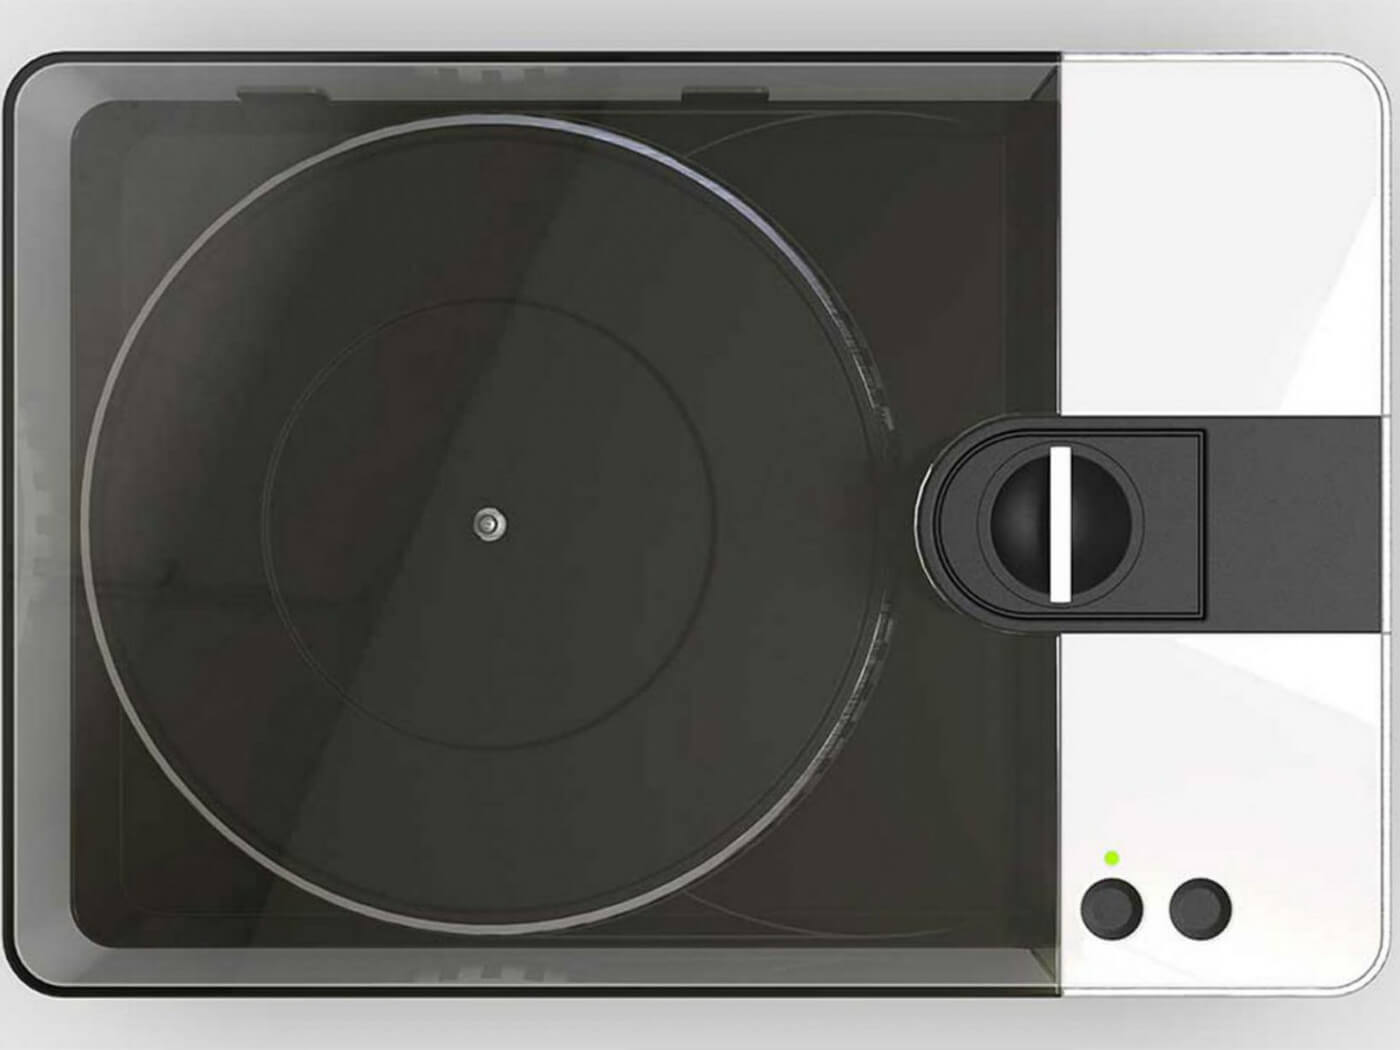 Phonocut lets you cut your own custom vinyl records